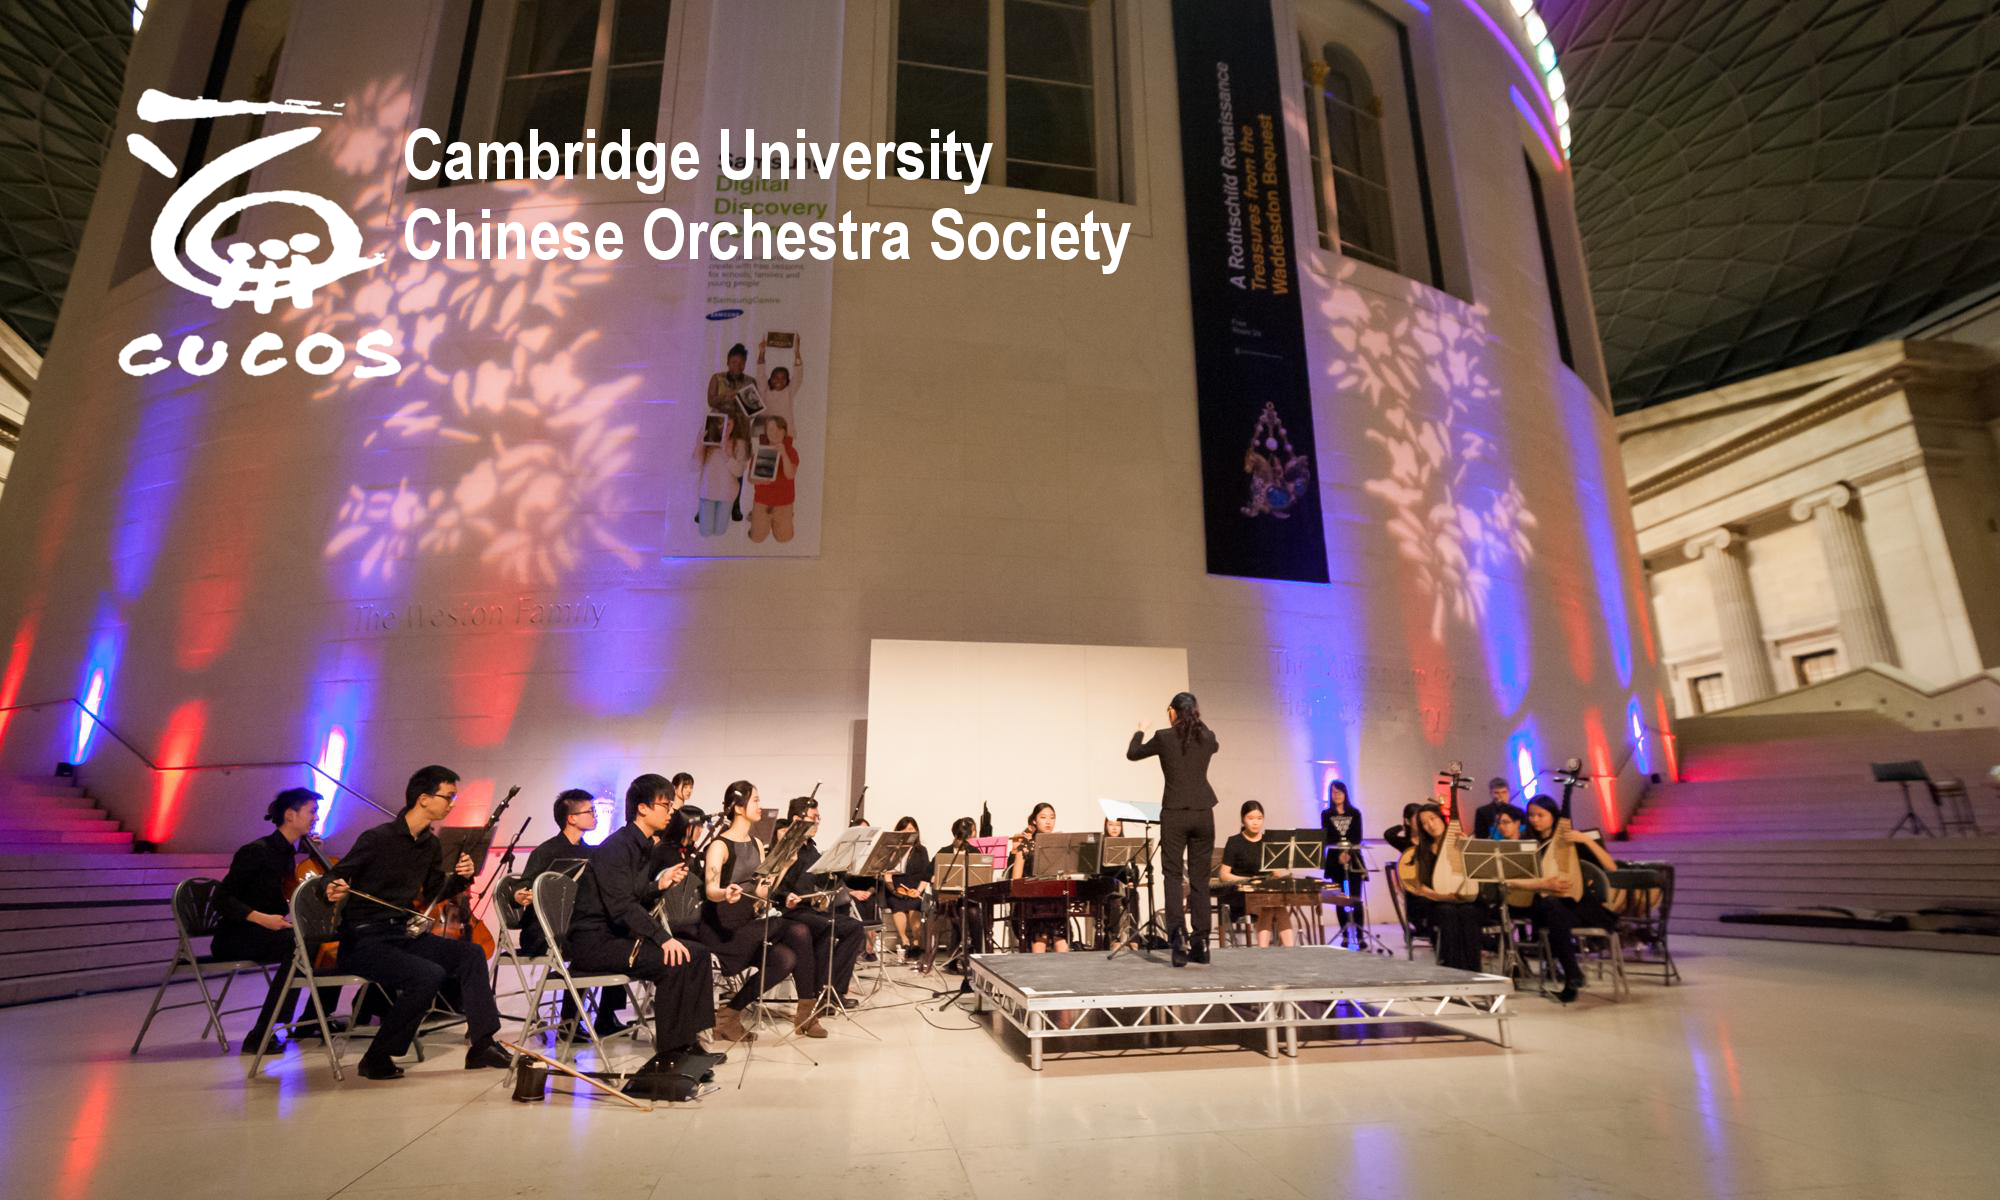 Cambridge University Chinese Orchestra Society